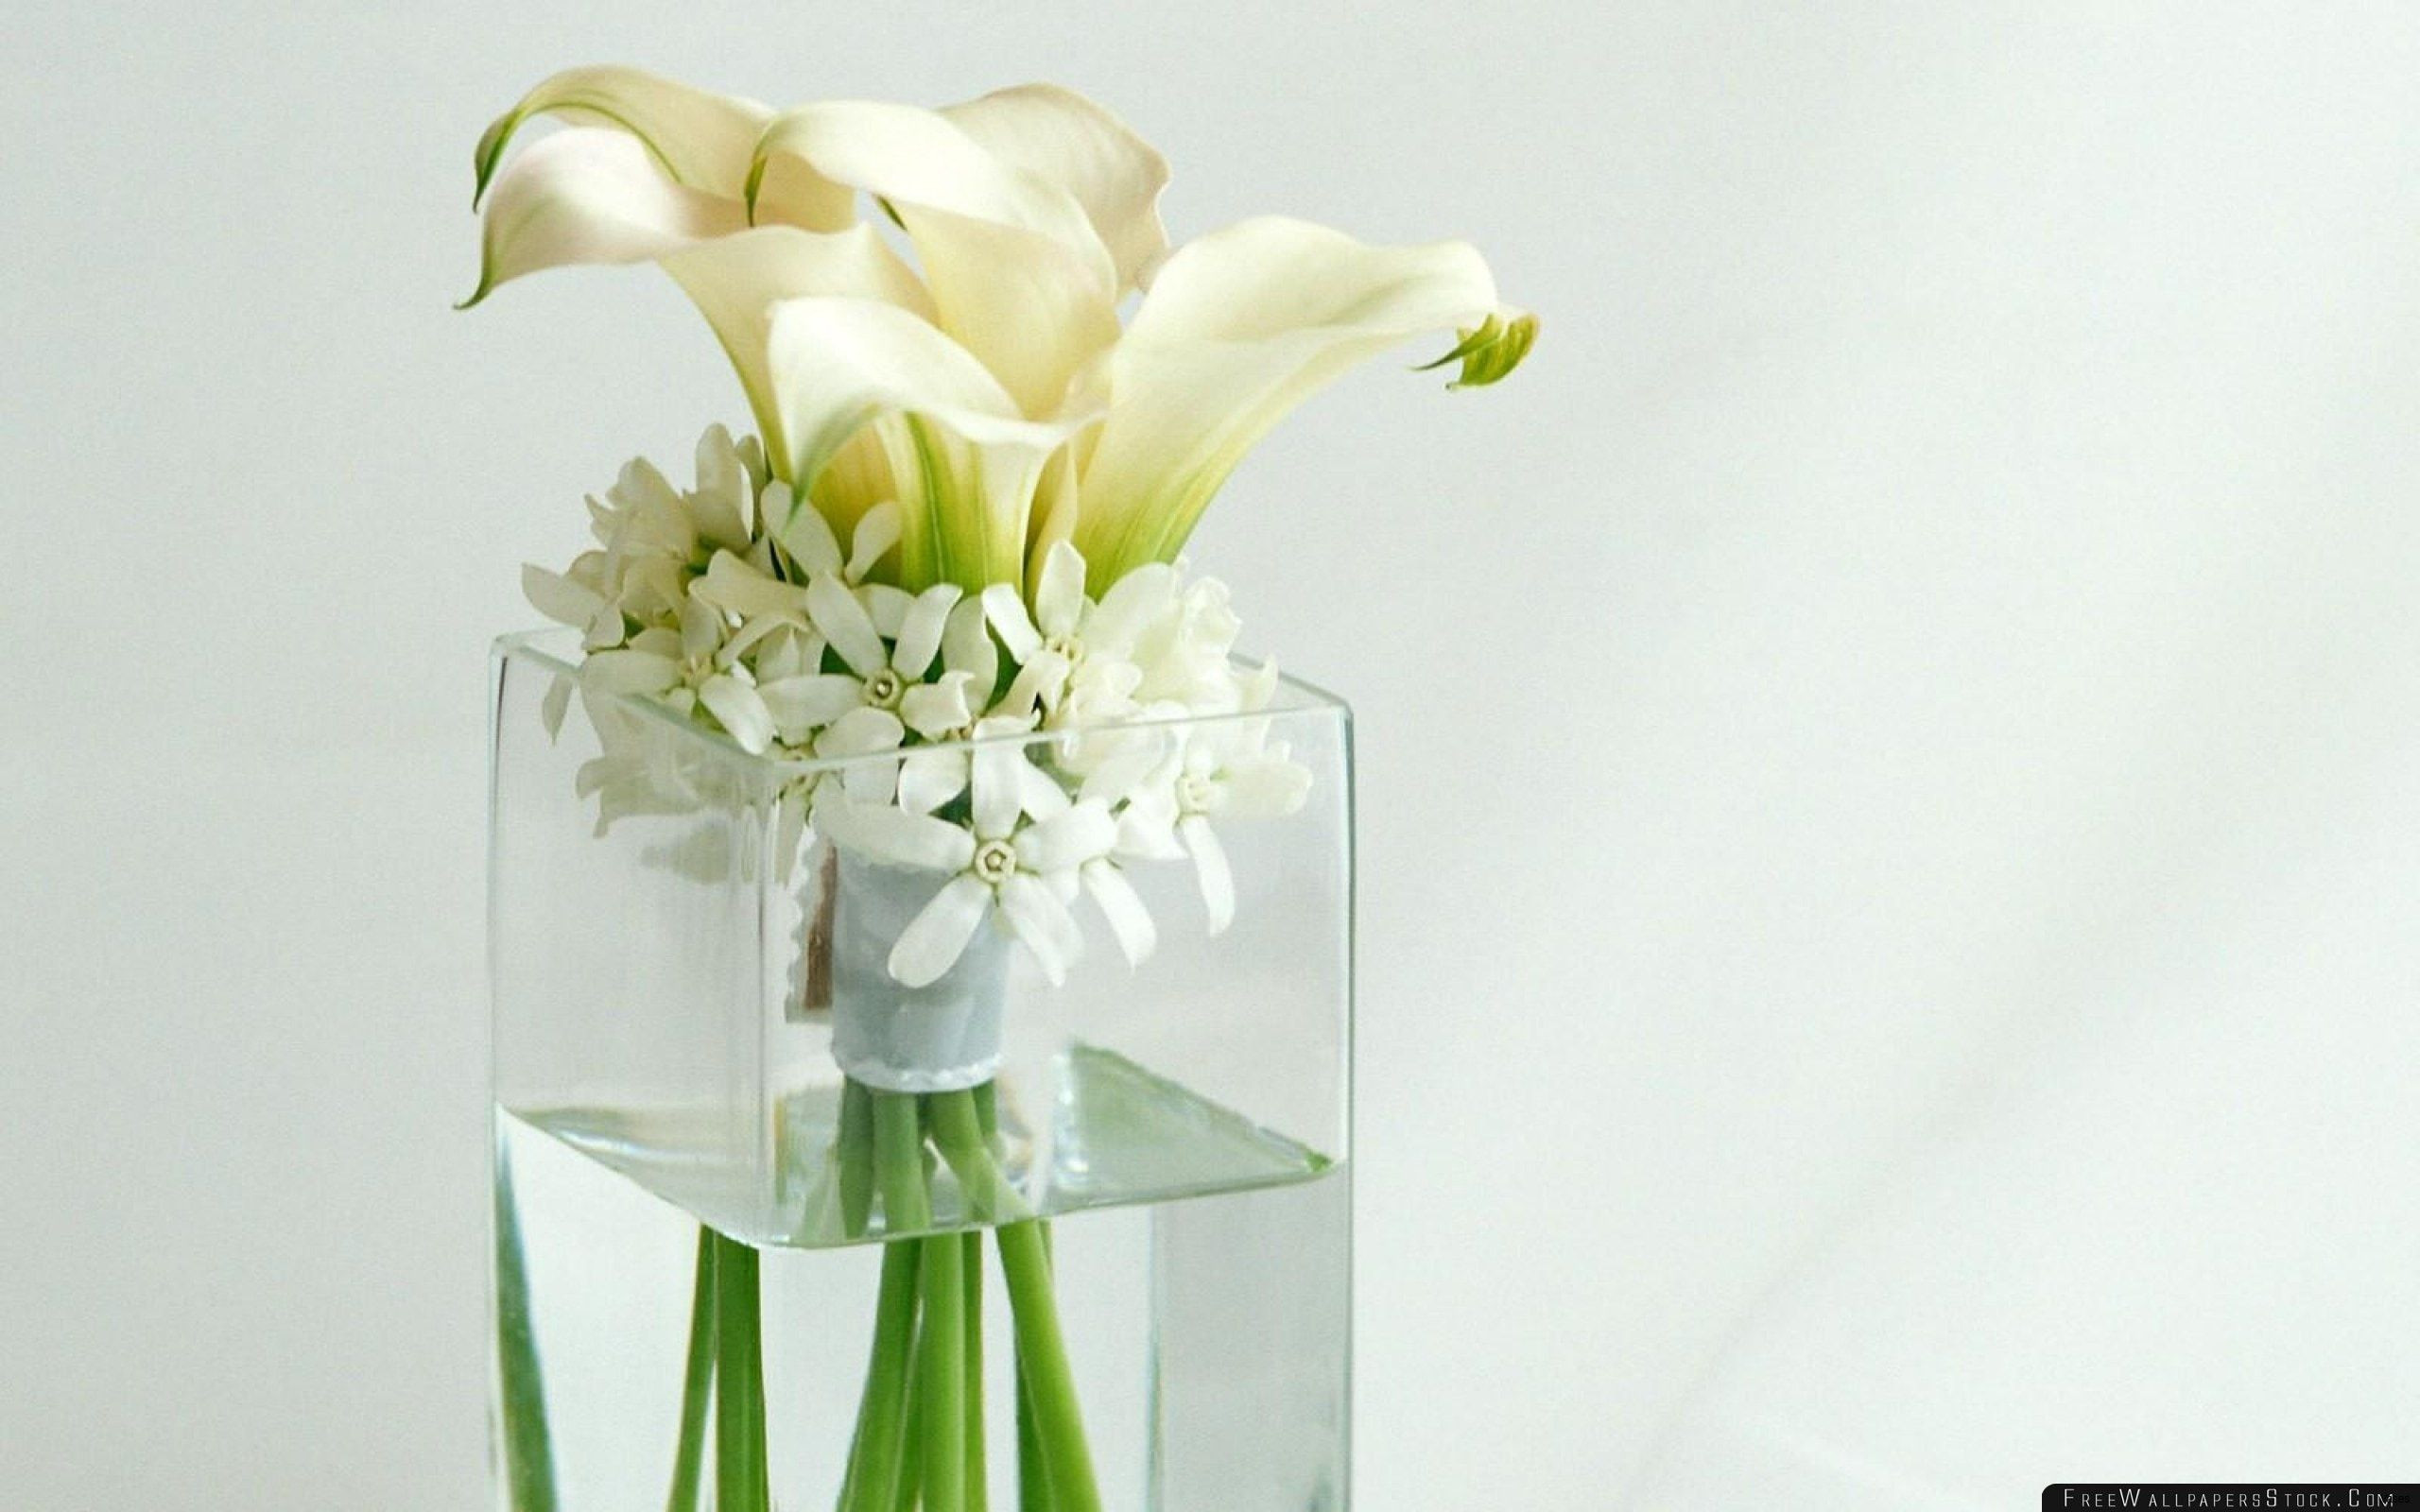 small clear glass bud vases of flowers in glass vase new tall vase centerpiece ideas vases flowers for flowers in glass vase new tall vase centerpiece ideas vases flowers in water 0d artificial